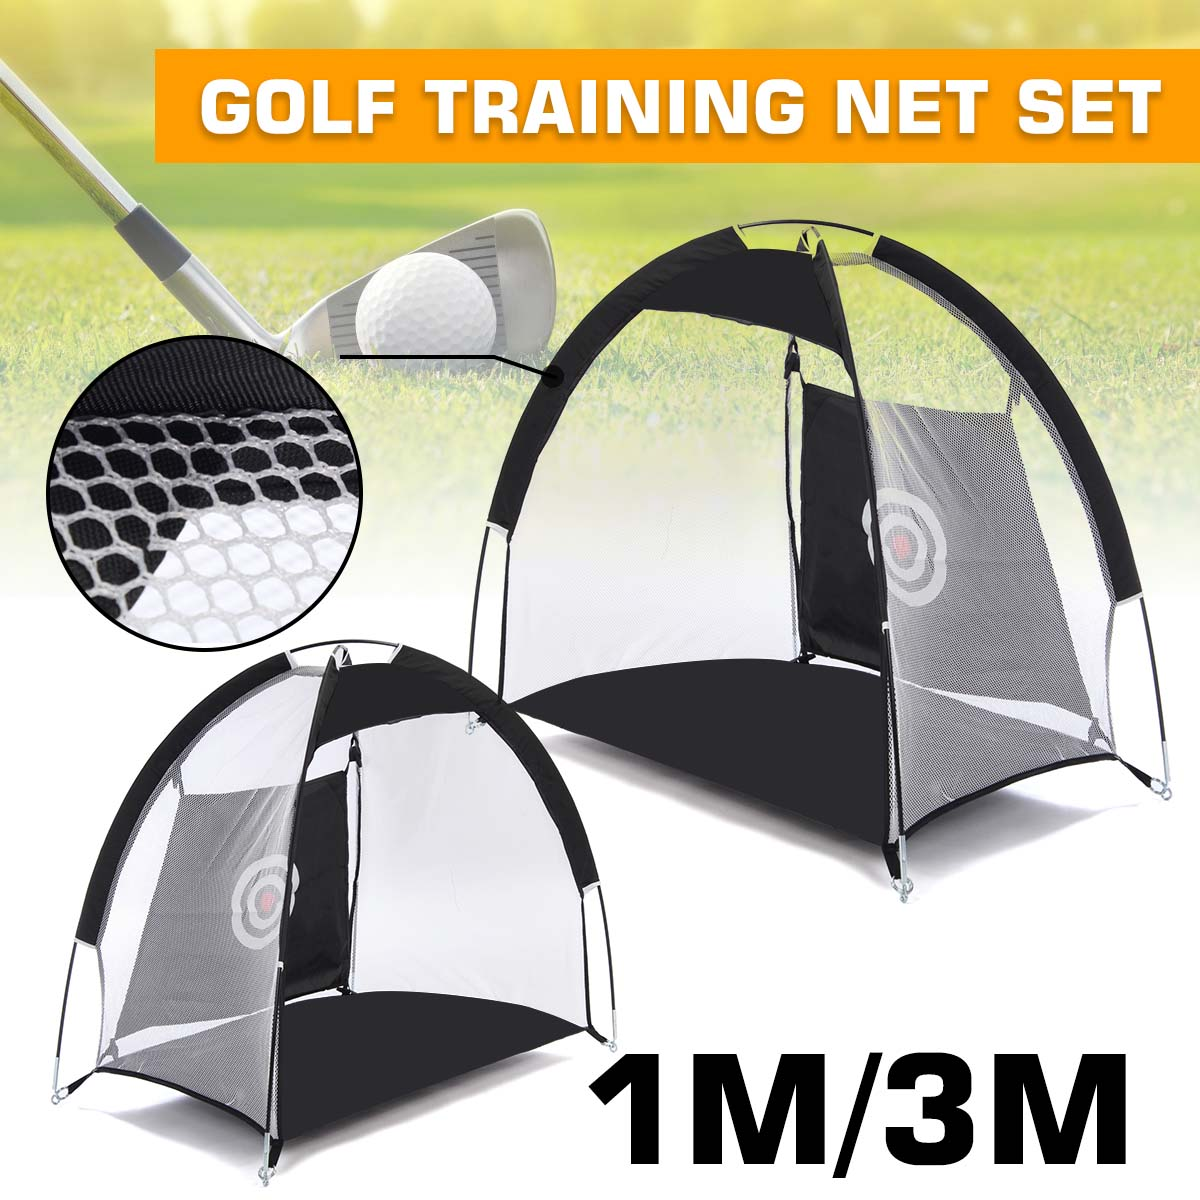 1M/3M Foldable Golf Net Practice Net Chipping Net Hitting Cage Trainer Indoor/Outdoor Grassland Golf Training Aids Equipment